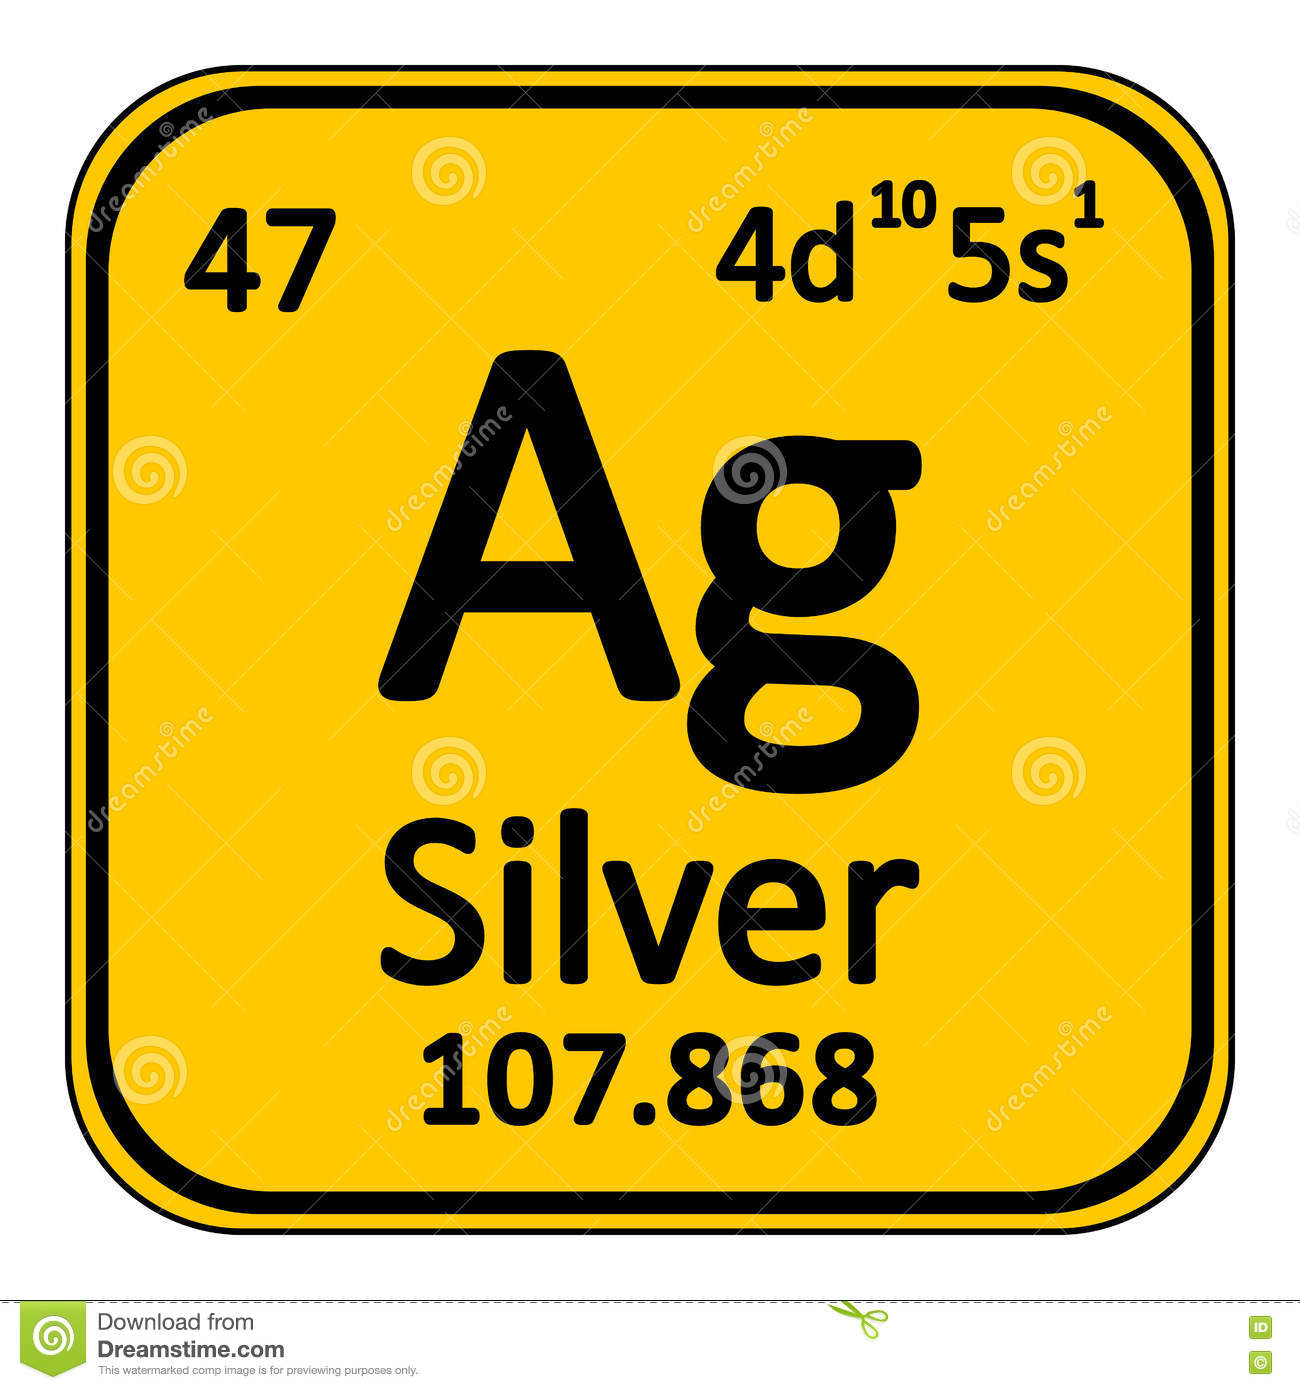 Periodic table element silver icon stock illustration image periodic table element silver icon gamestrikefo Image collections